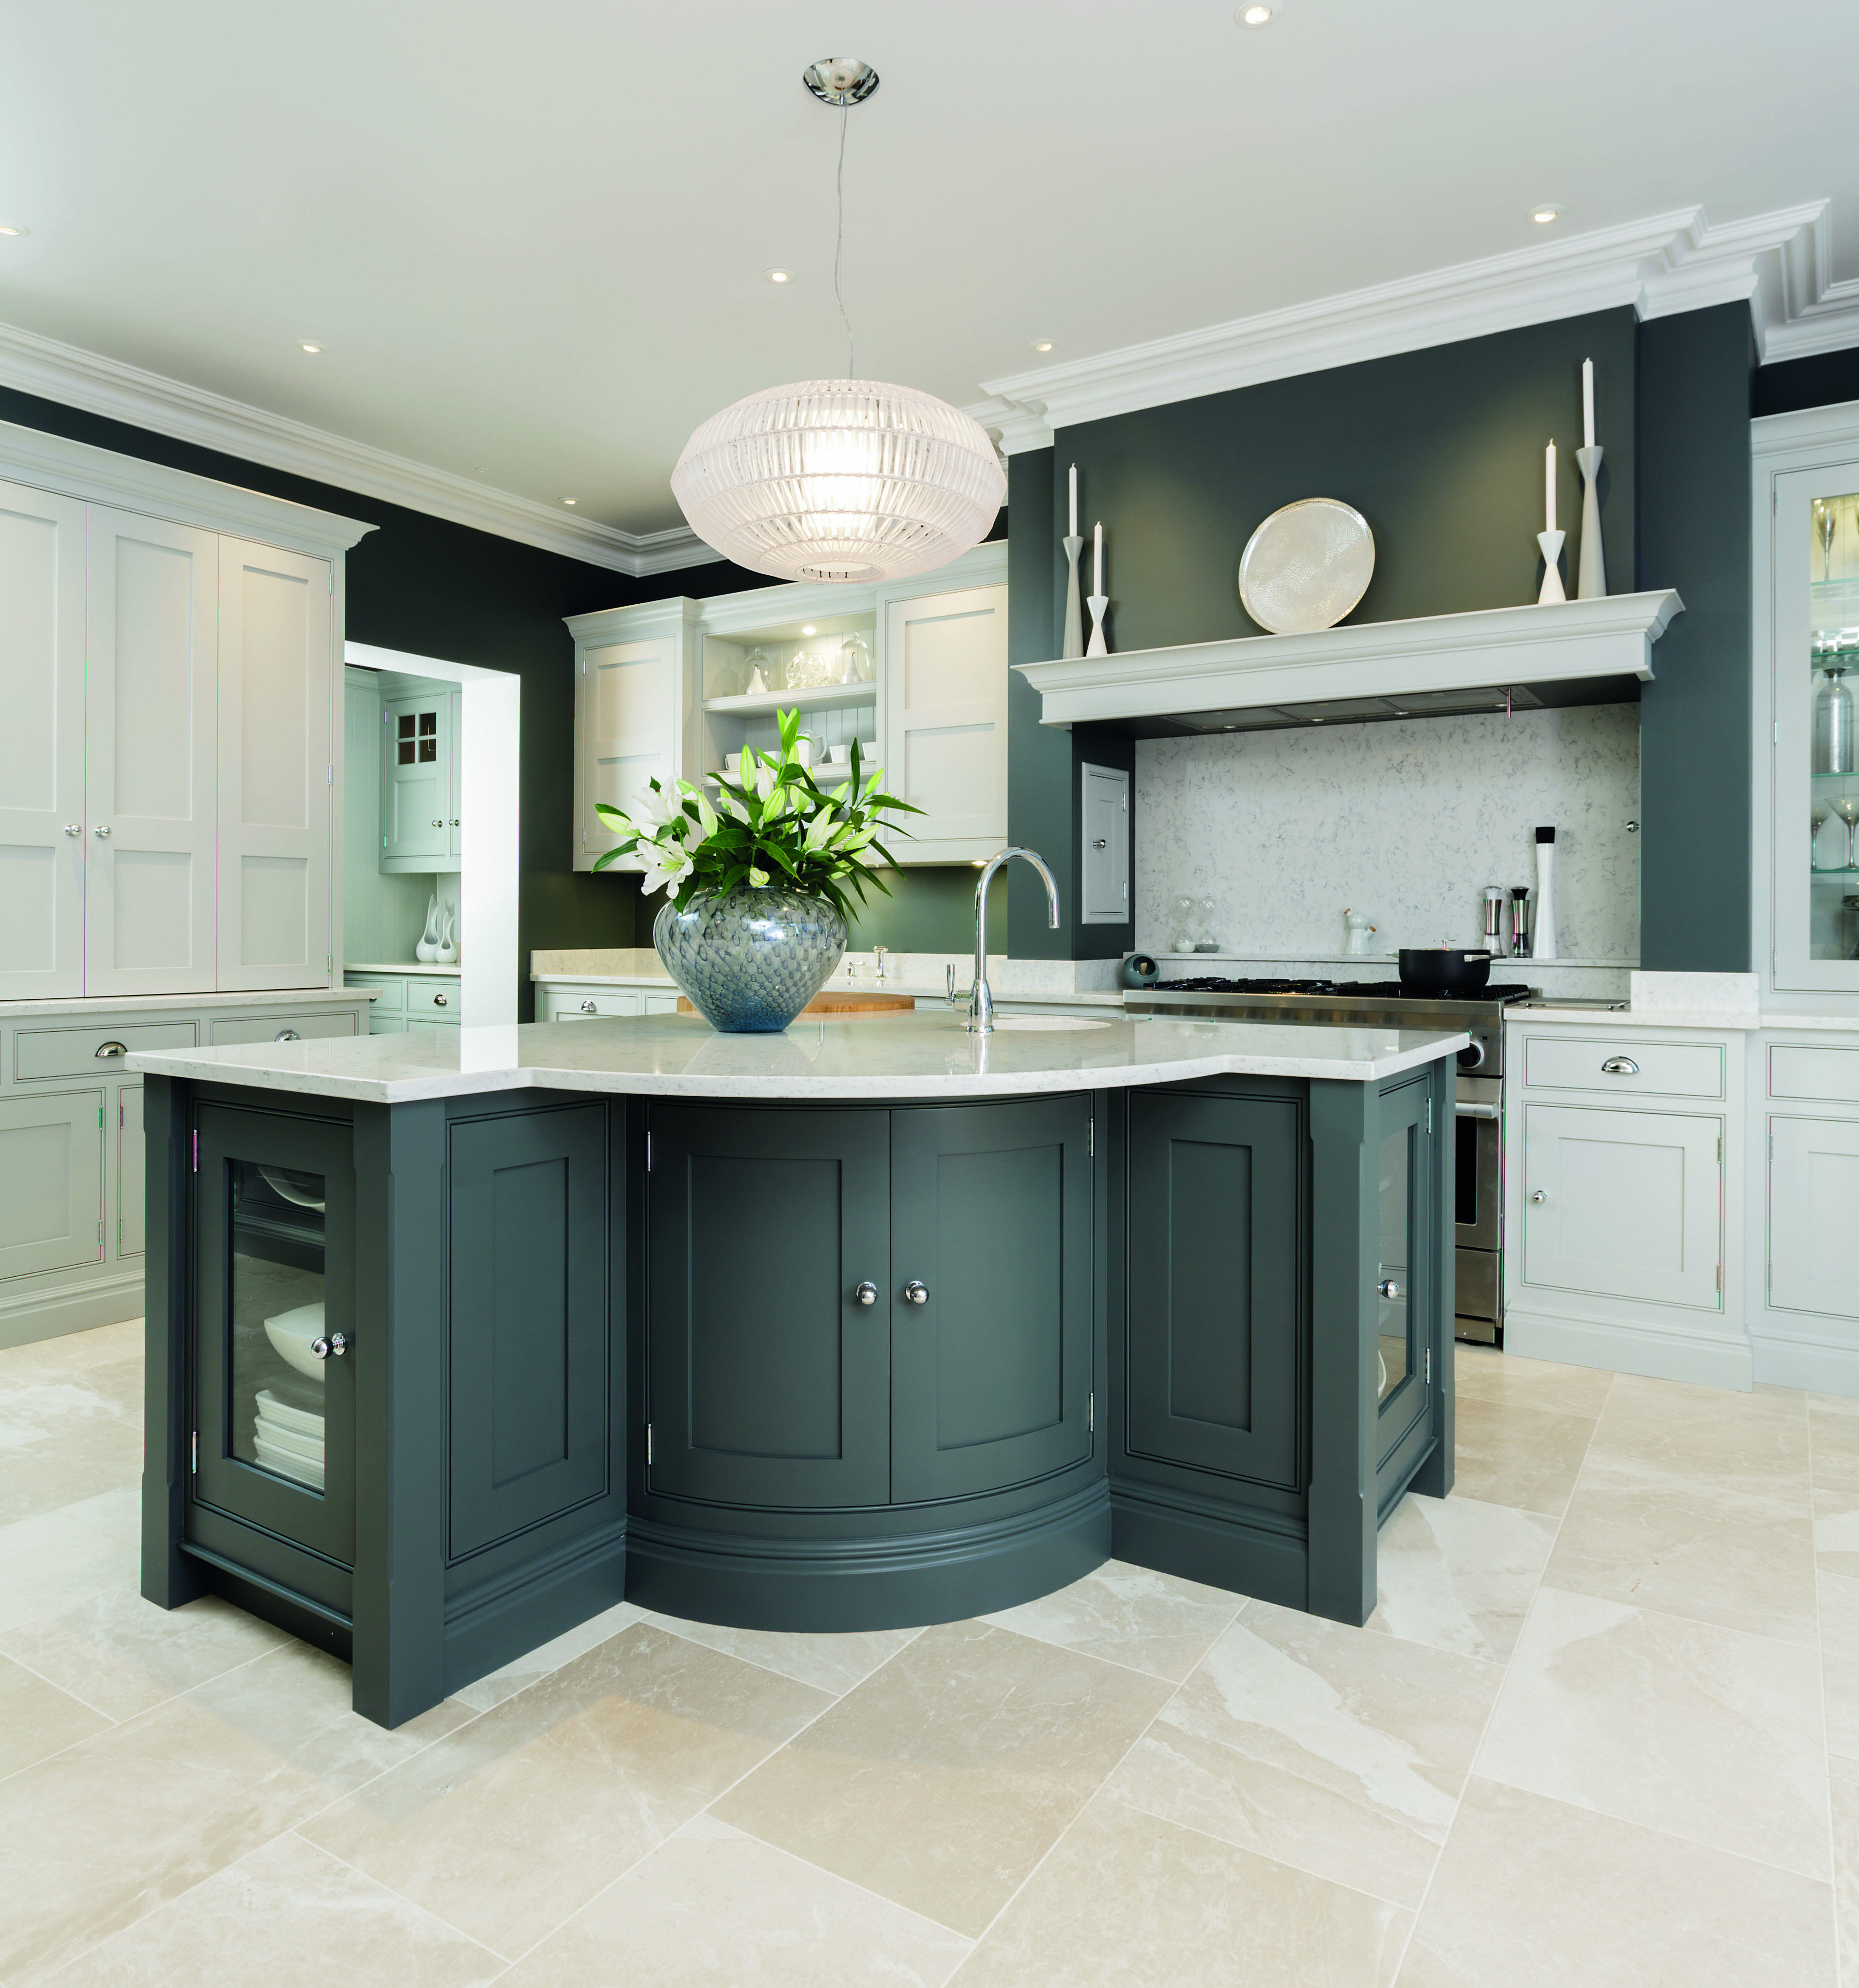 Painted Kitchen Island Ideas: This Bespoke Kitchen By Tom Howley Features A Show